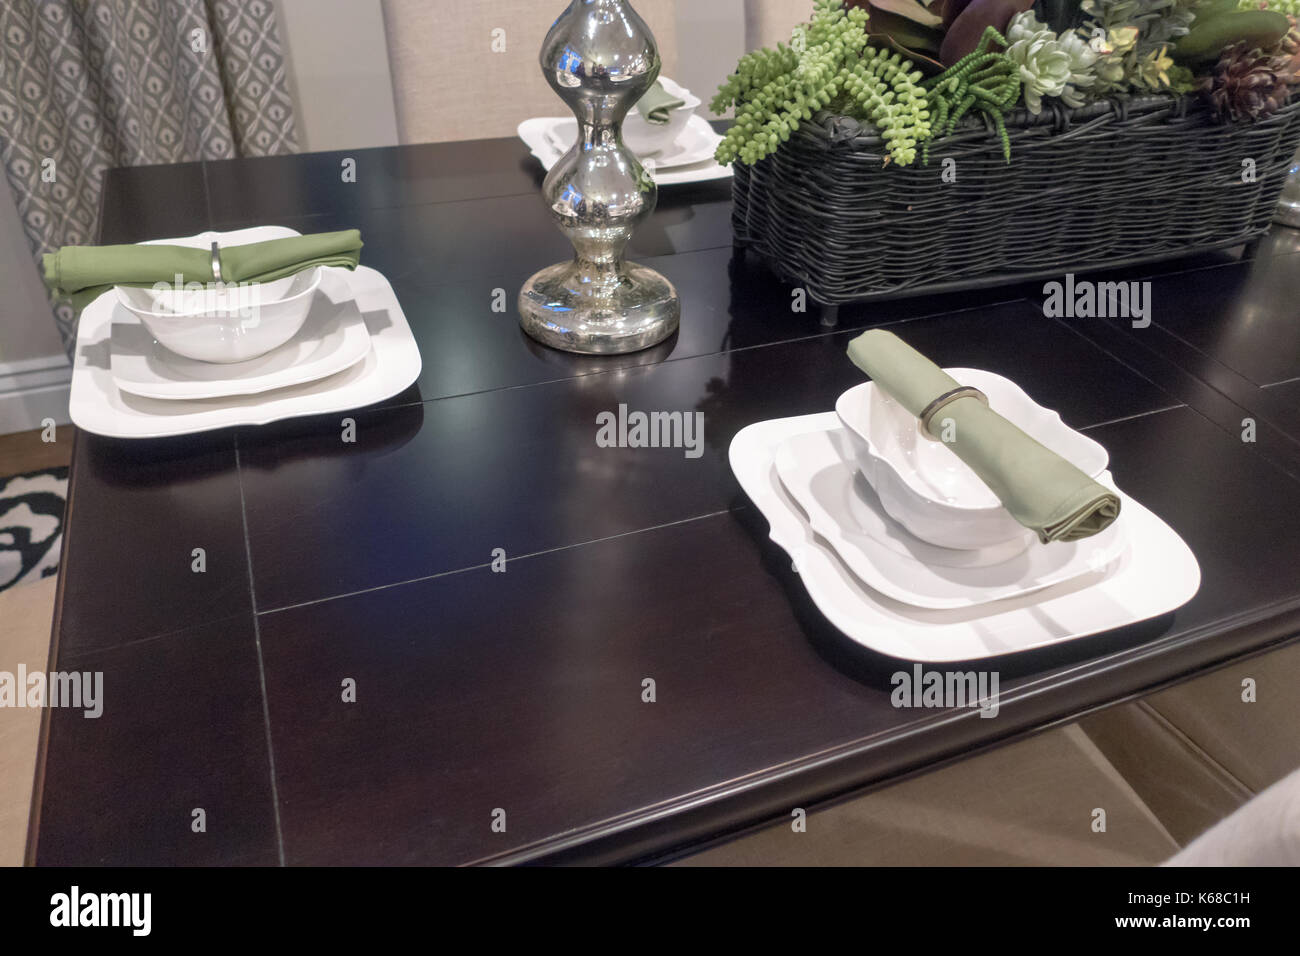 Place Settings Around A Brown Dining Room Table With Bowls And Green Napkins Laid Out